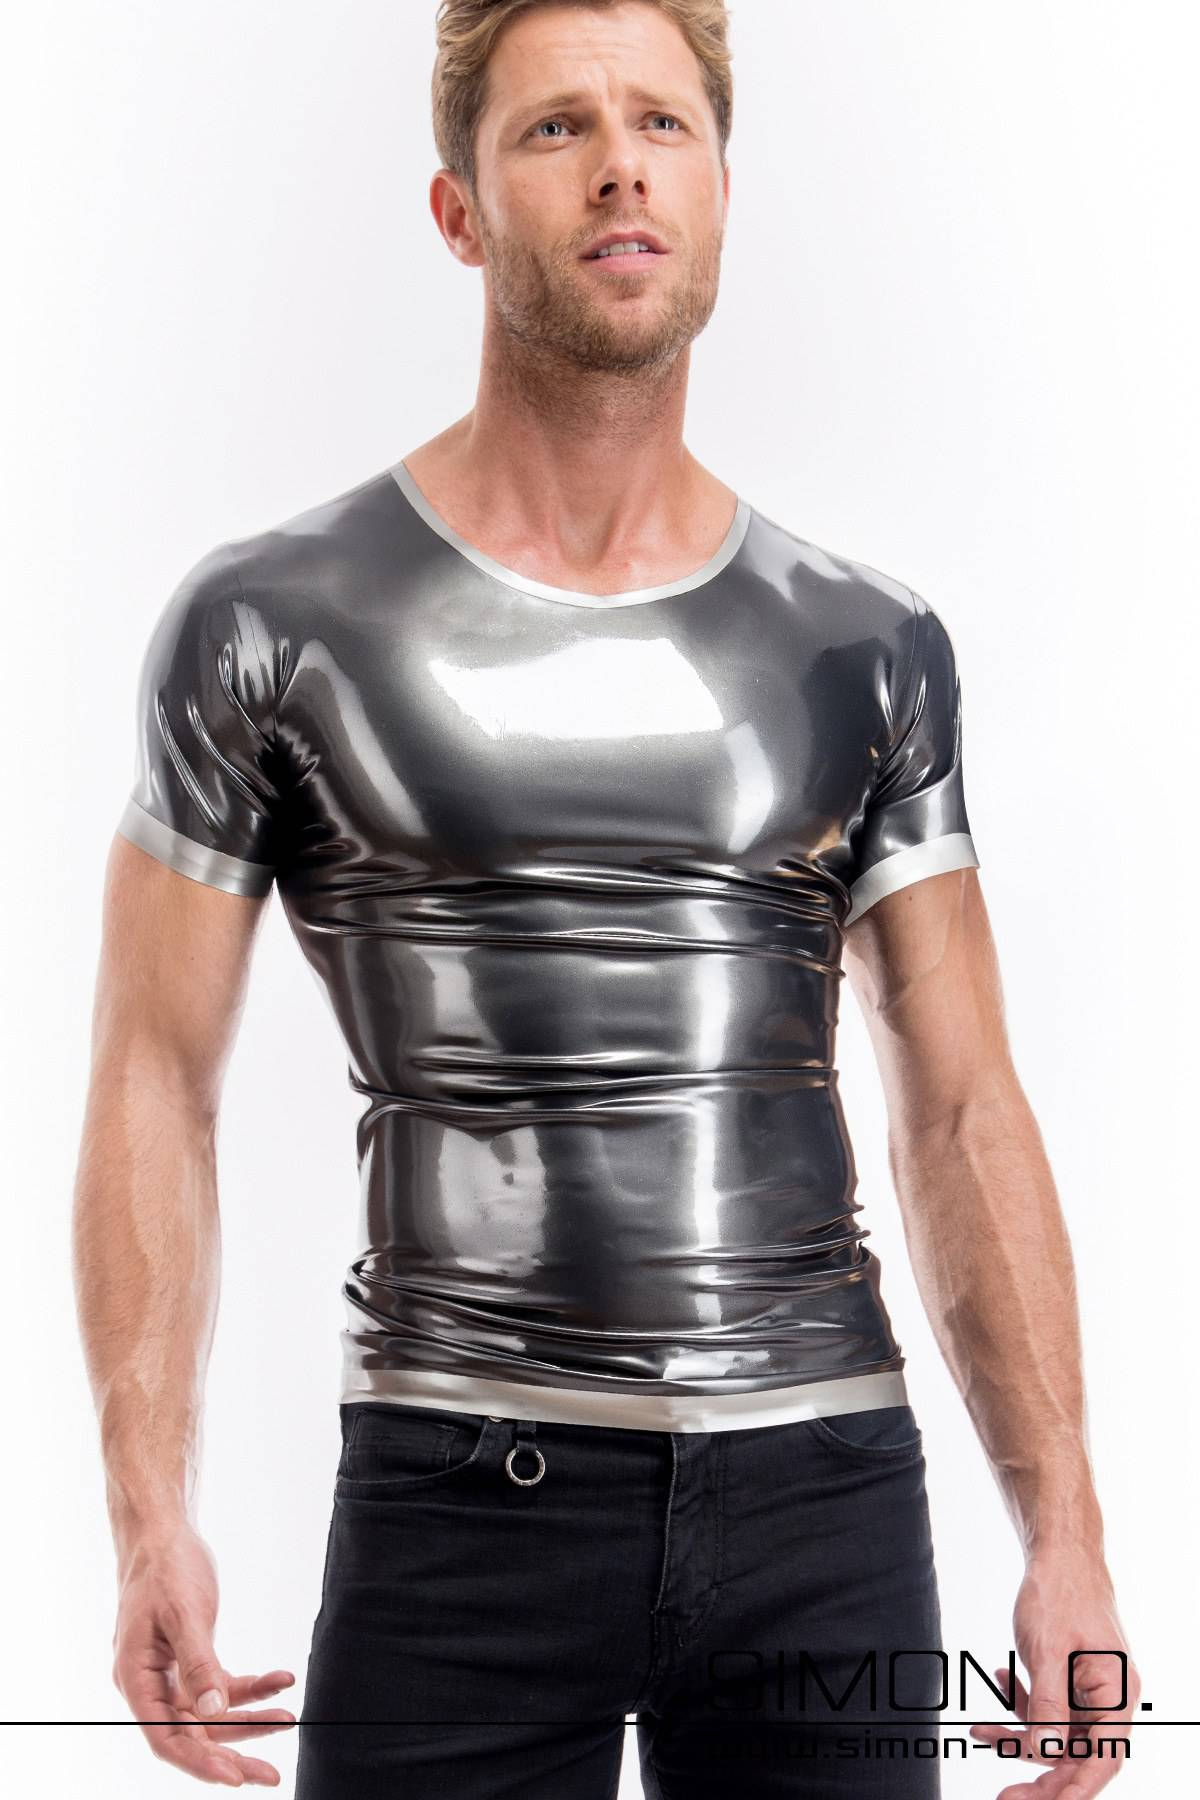 Enjoy a latex fetish wear classic with our Men's Classic Short Sleeved Latex Shirt which comes in your choice of two colours. This classic short sleeved …